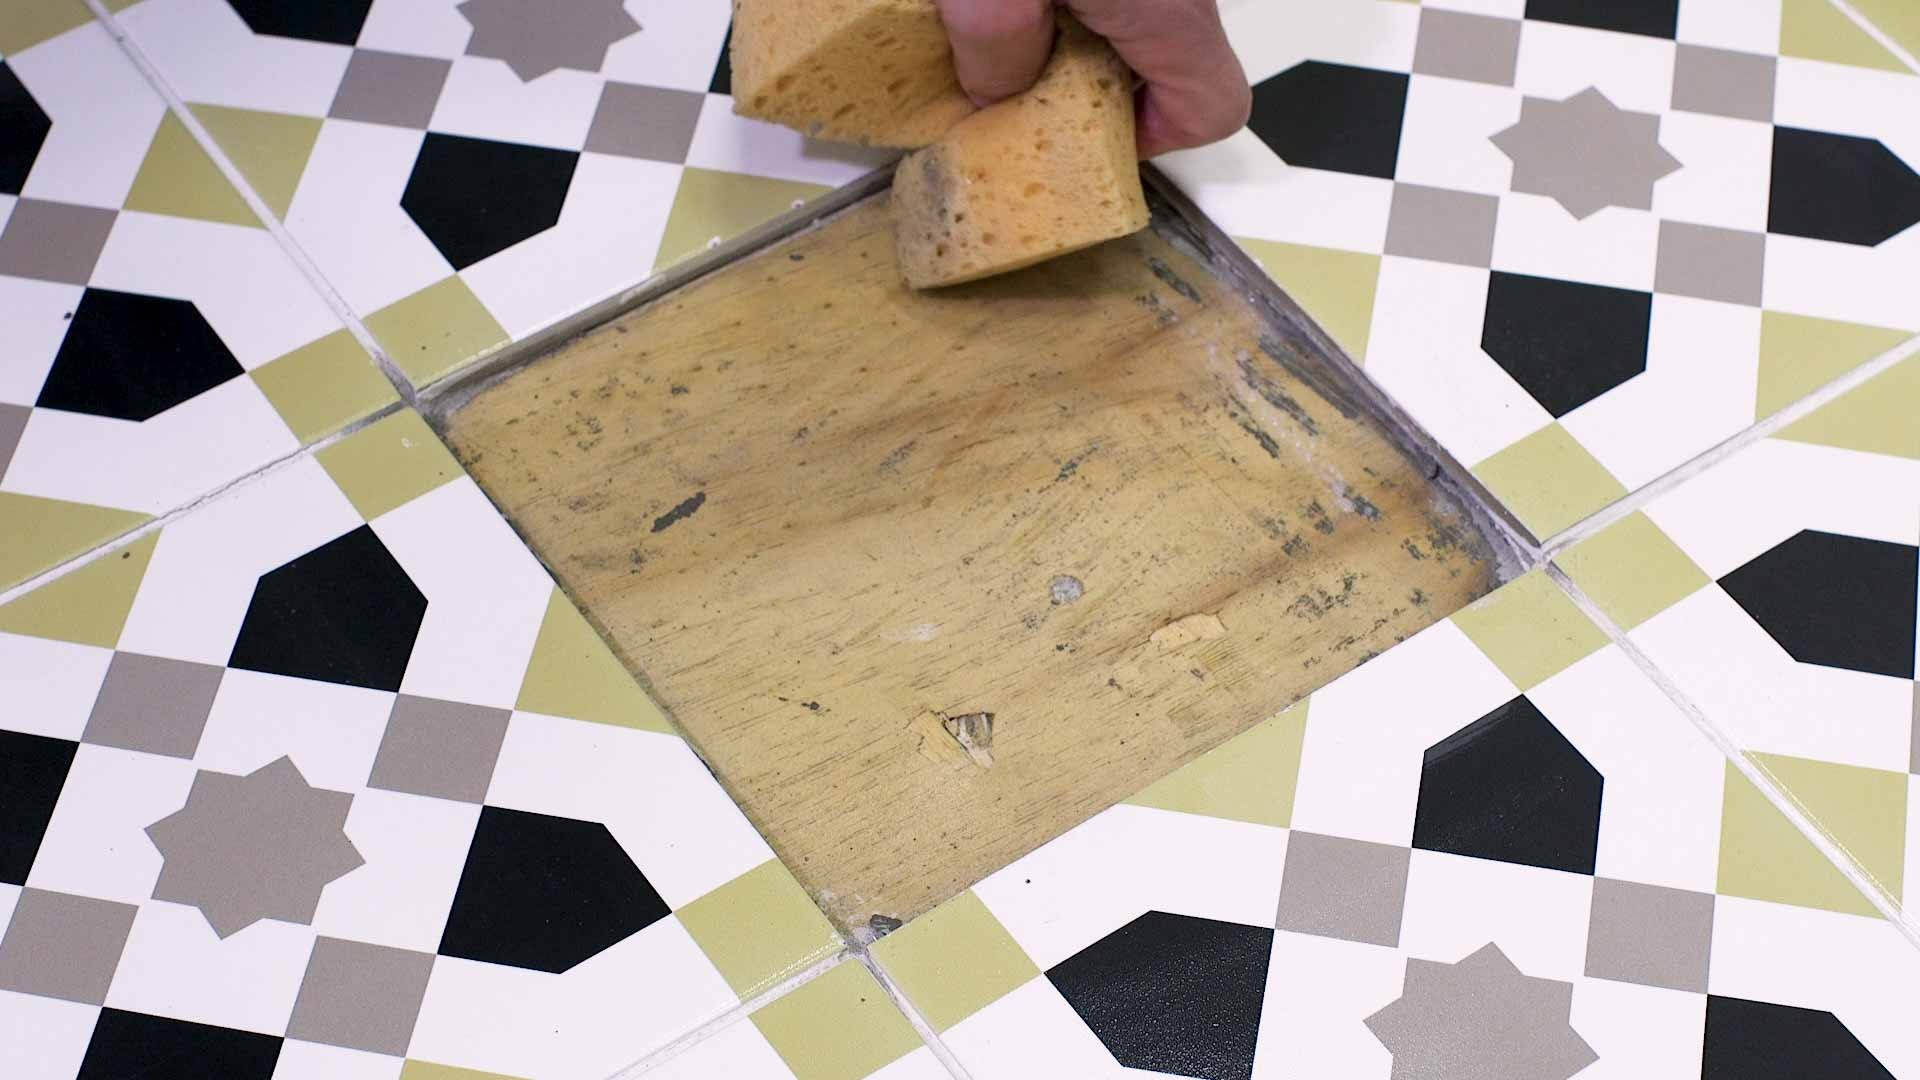 How to replace a damaged tile 5